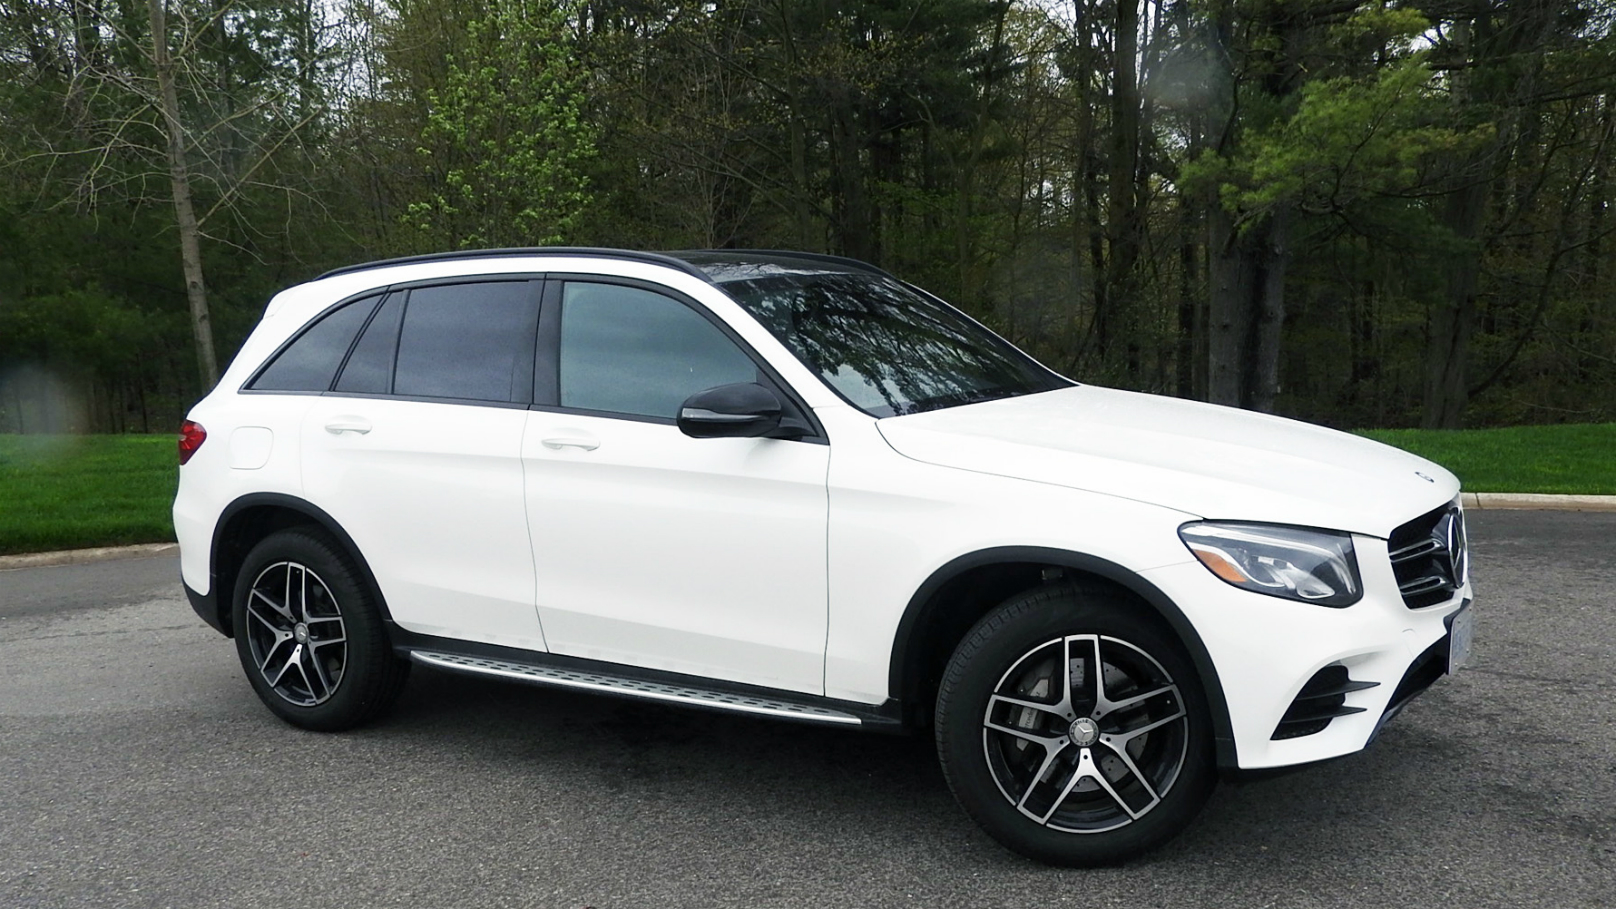 2017 Mercedes-Benz GLC 300 4Matic